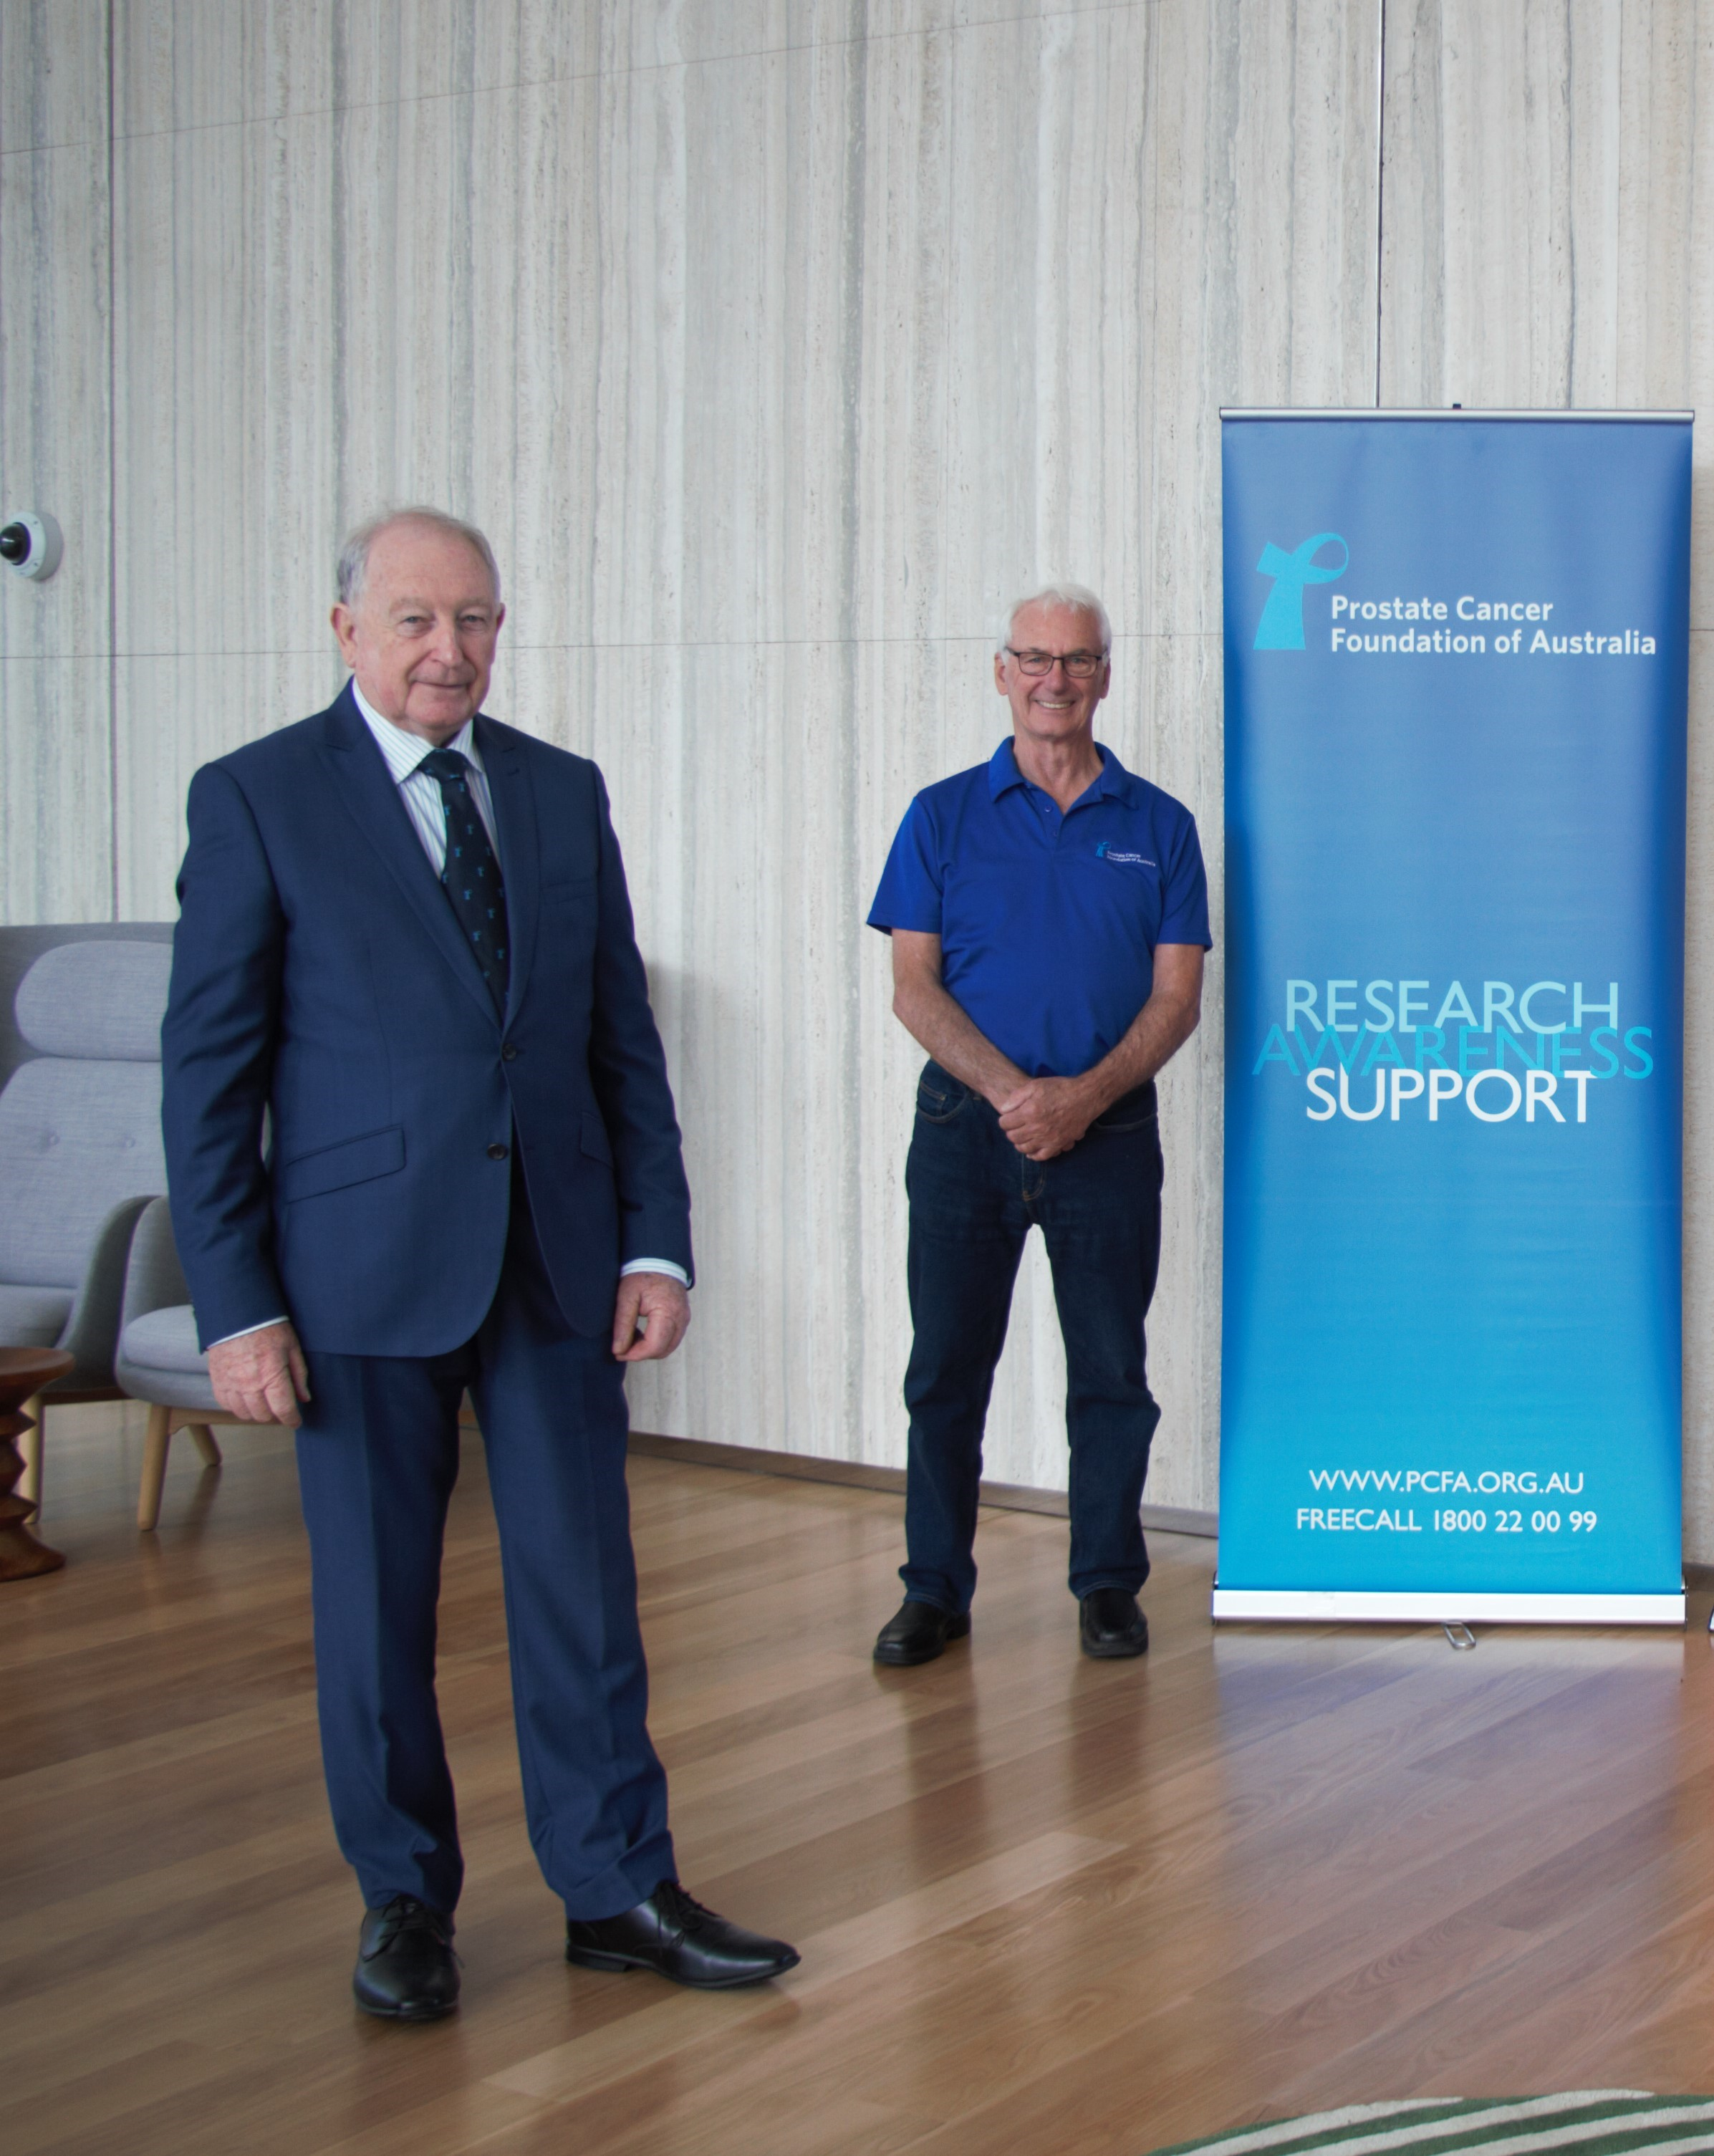 Major parties called to boost support for regional men with prostate cancer